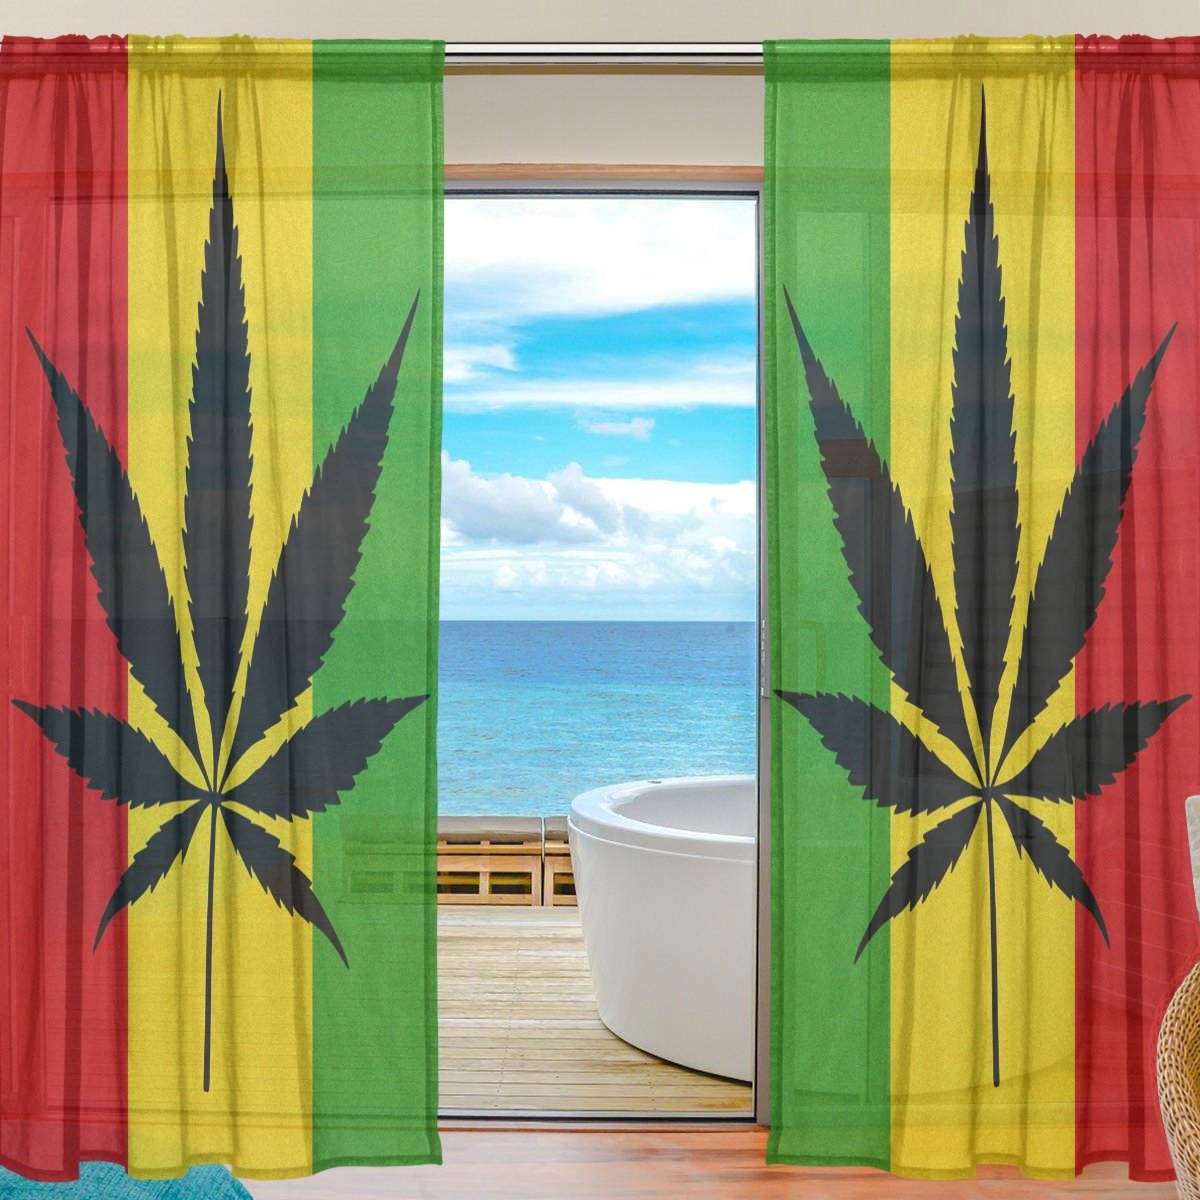 SEULIFE Window Sheer Curtain, Marijuana Leaf Leaves Cannabis Voile Curtain Drapes for Door Kitchen Living Room Bedroom 55x78 inches 2 Panels by SEULIFE